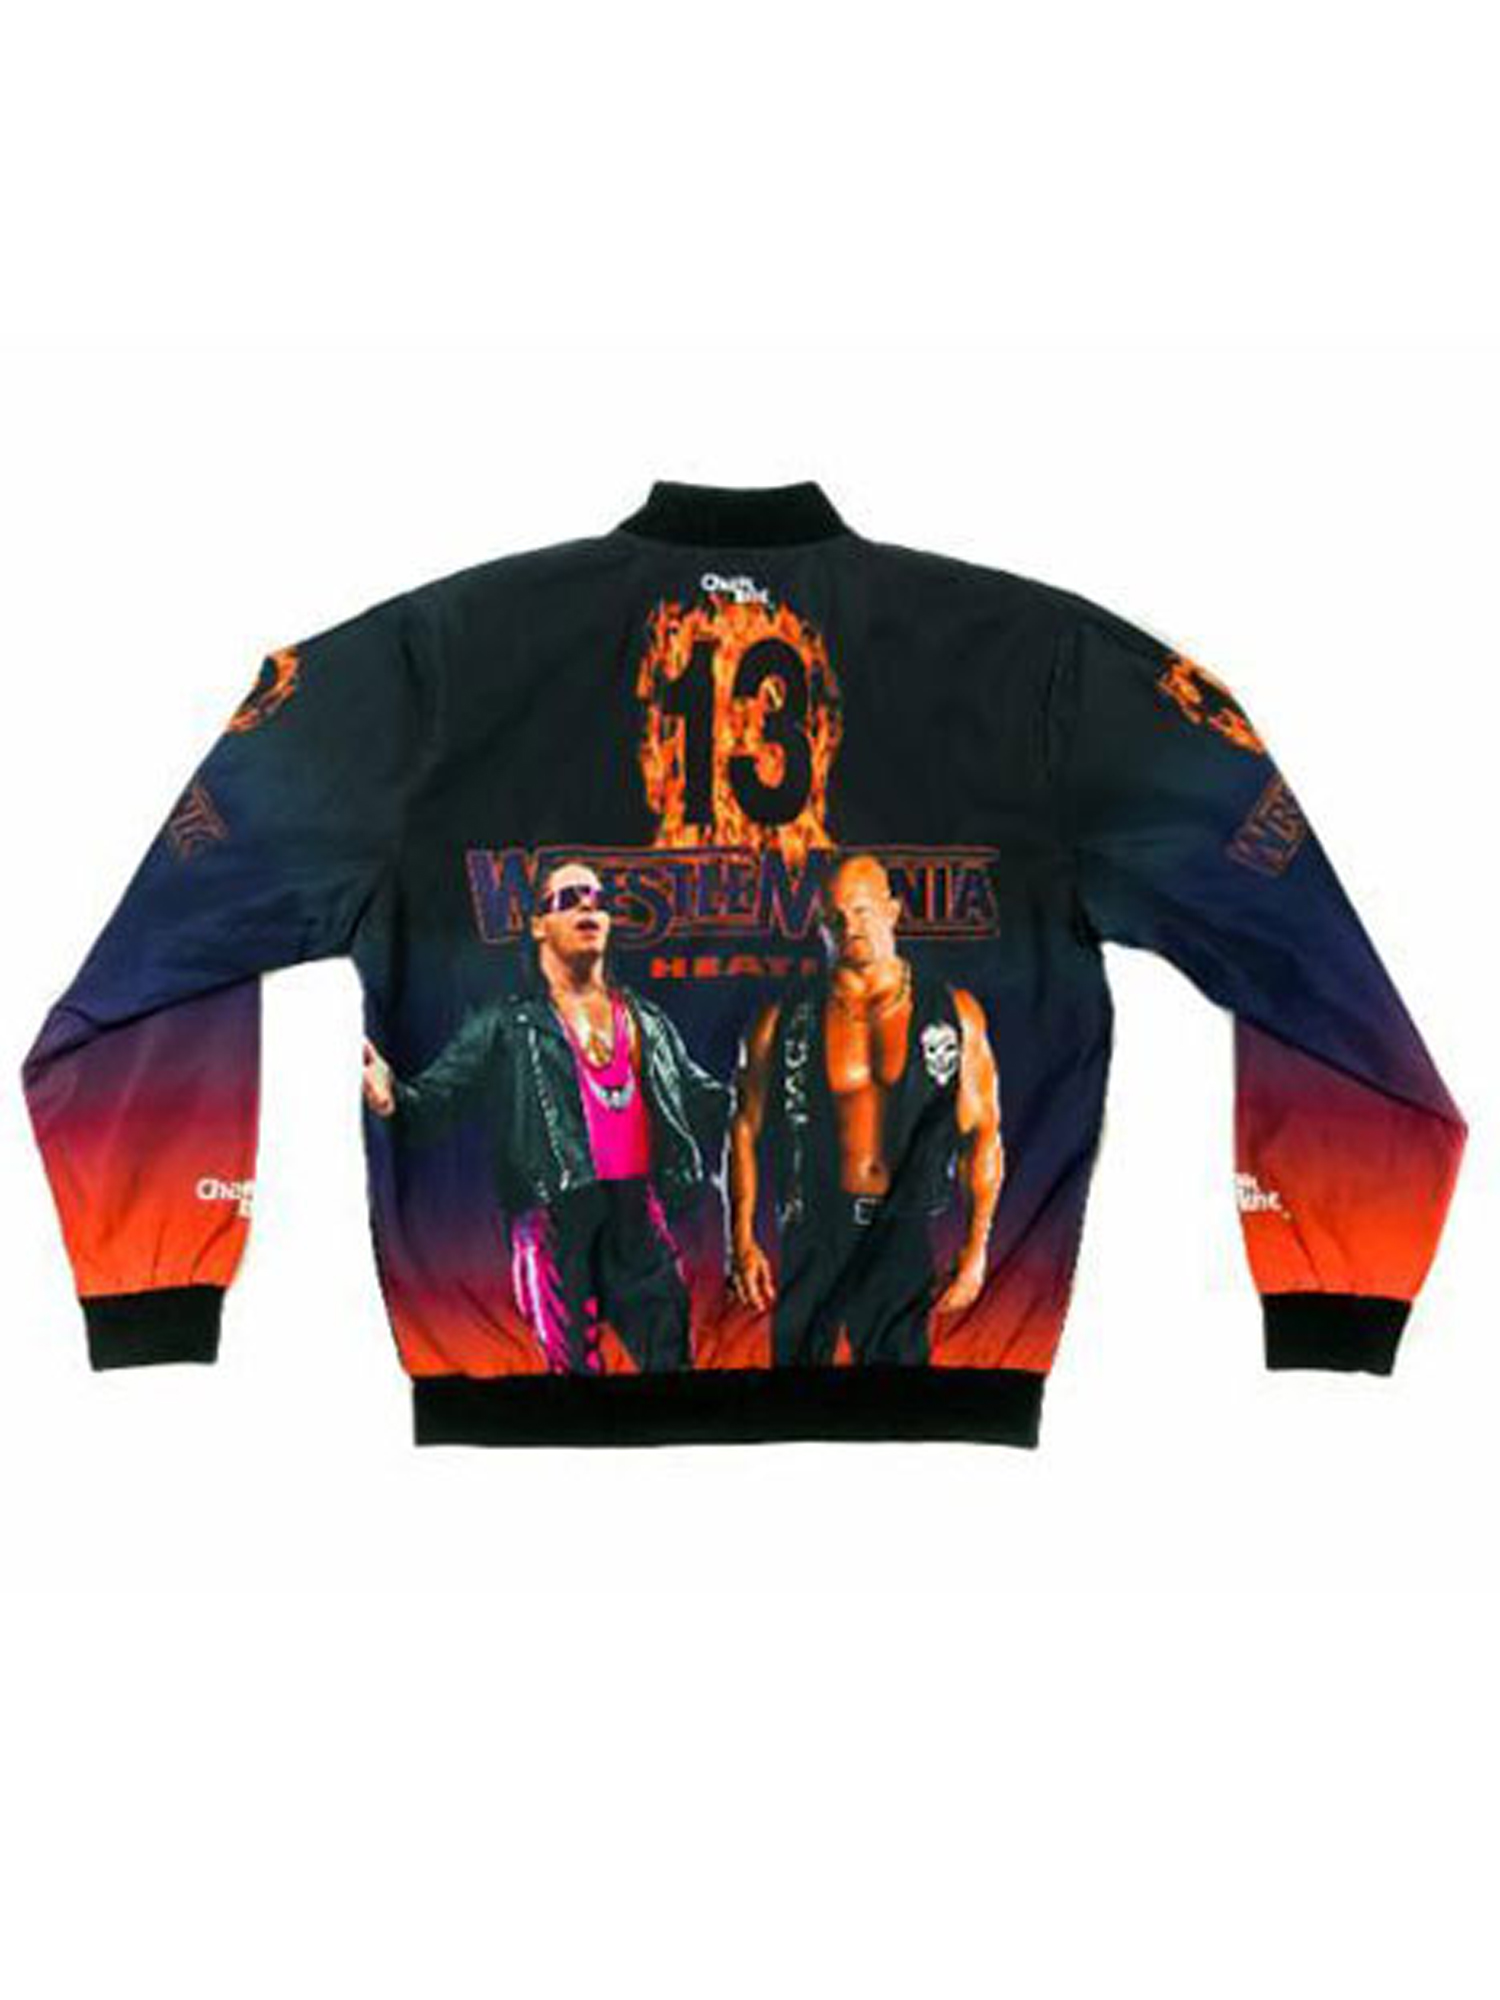 Official WWE Authentic WrestleMania 13 Retro Fanimation Chalk Line Jacket by